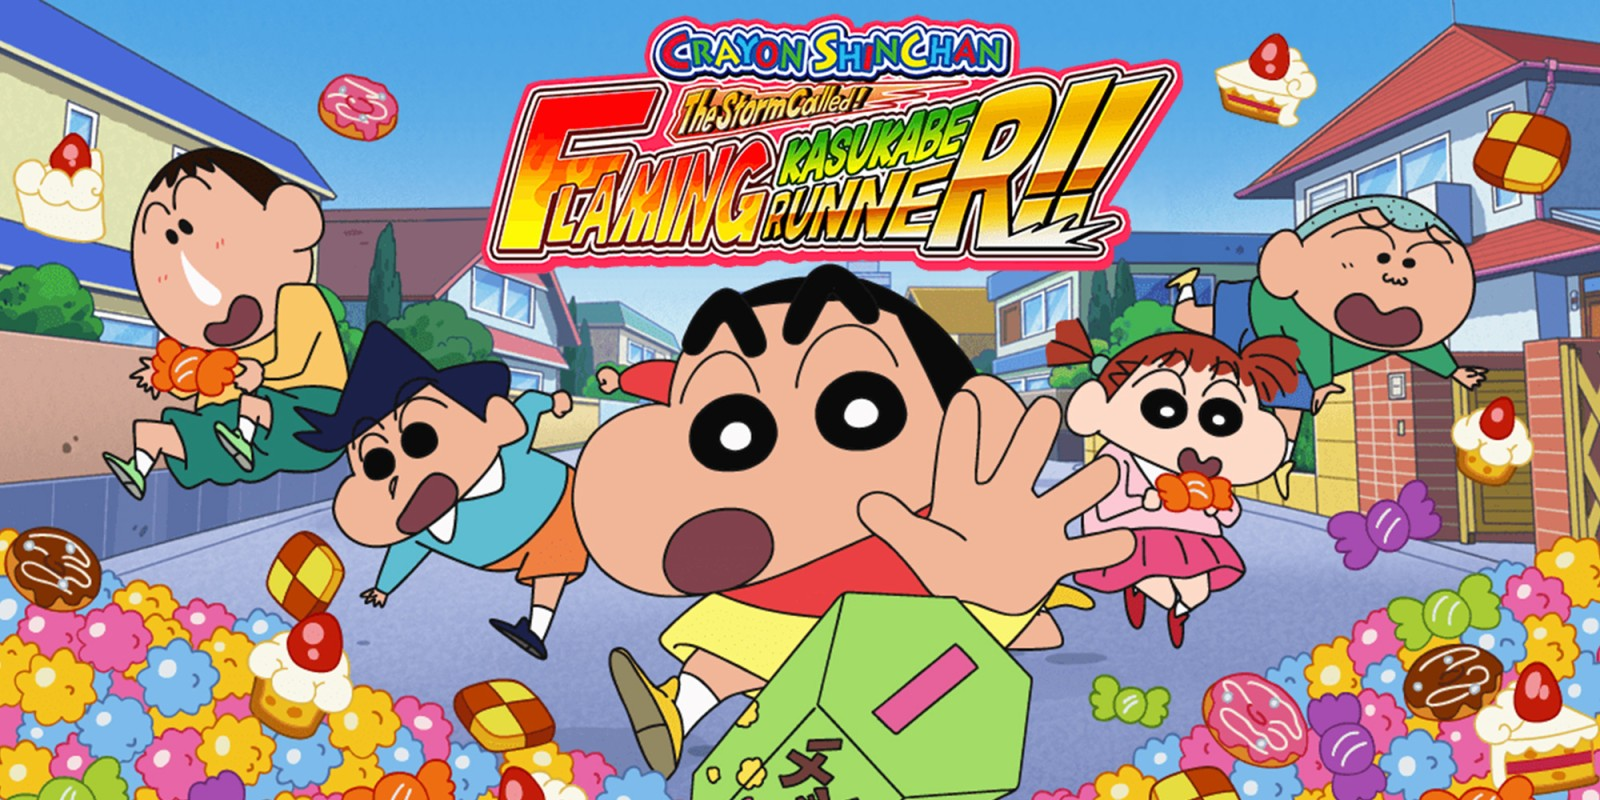 CRAYON SHINCHAN The Storm Called FLAMING KASUKABE RUNNER!!